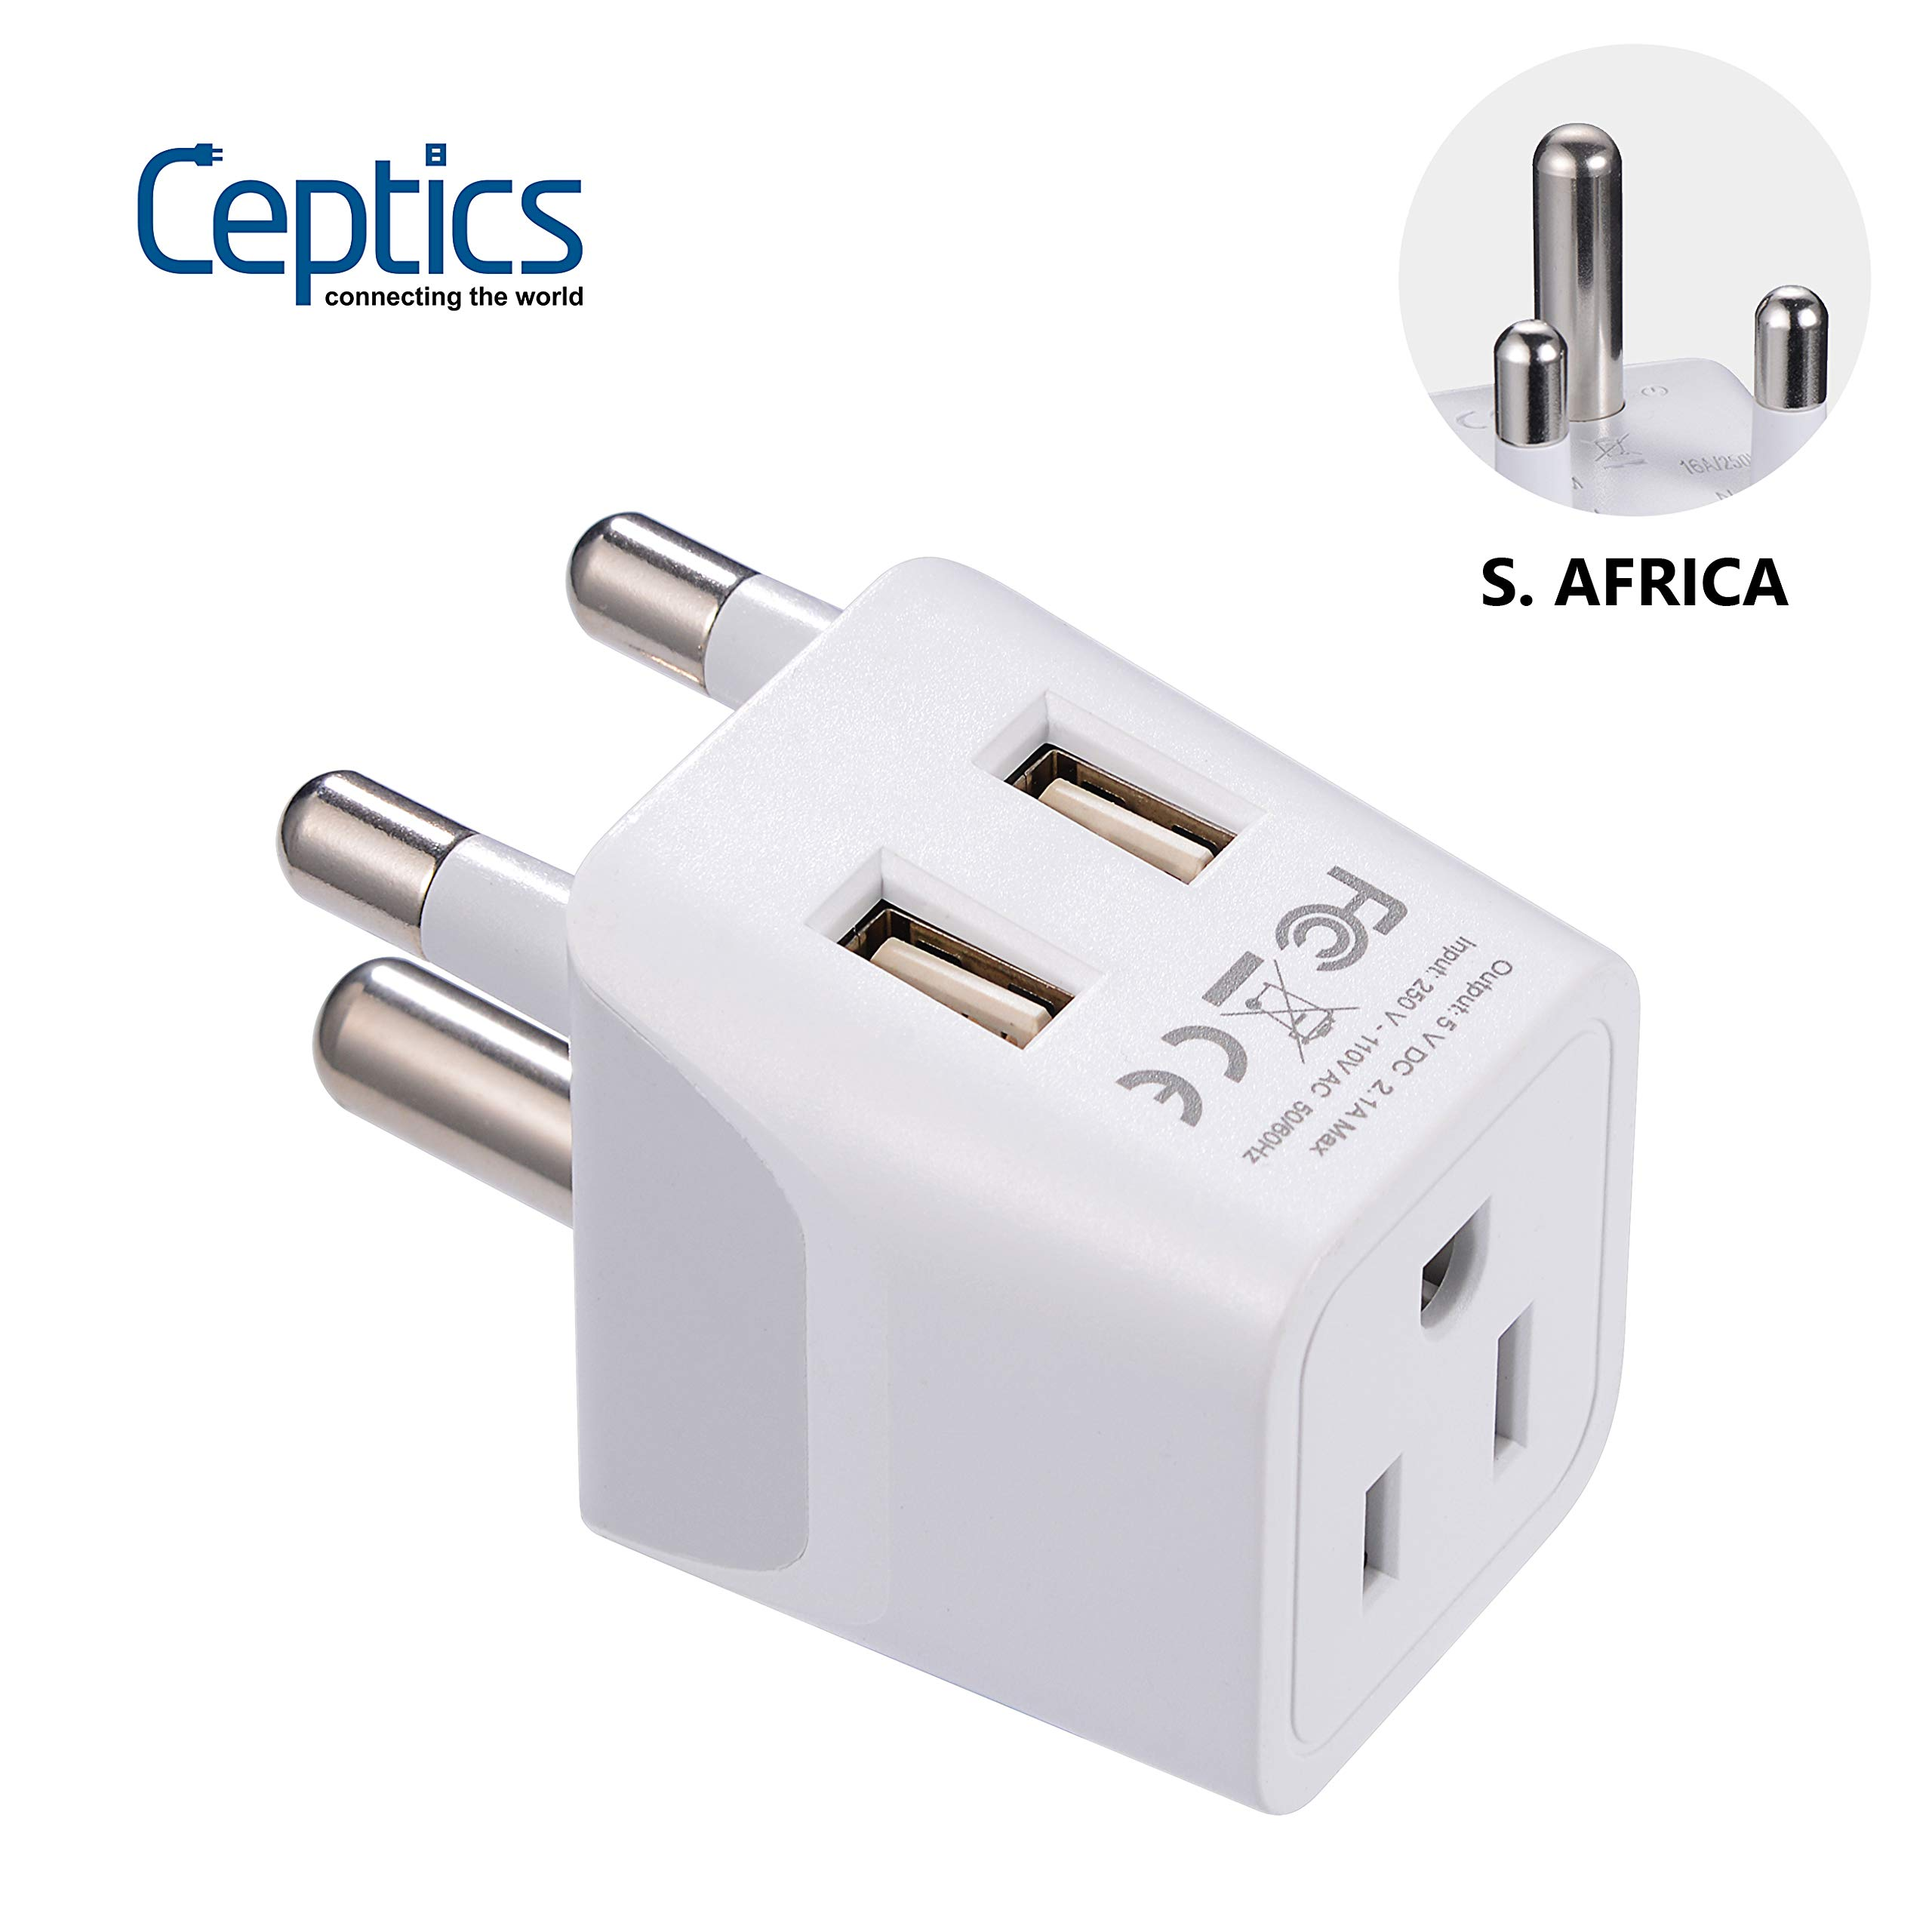 South Africa, Botswana Travel Adapter Plug by Ceptics With Dual USB + USA Input - Type M - Ultra Compact - Safe Grounded Perfect for Cell Phones, Laptops, Camera Chargers and More (CTU-10L)